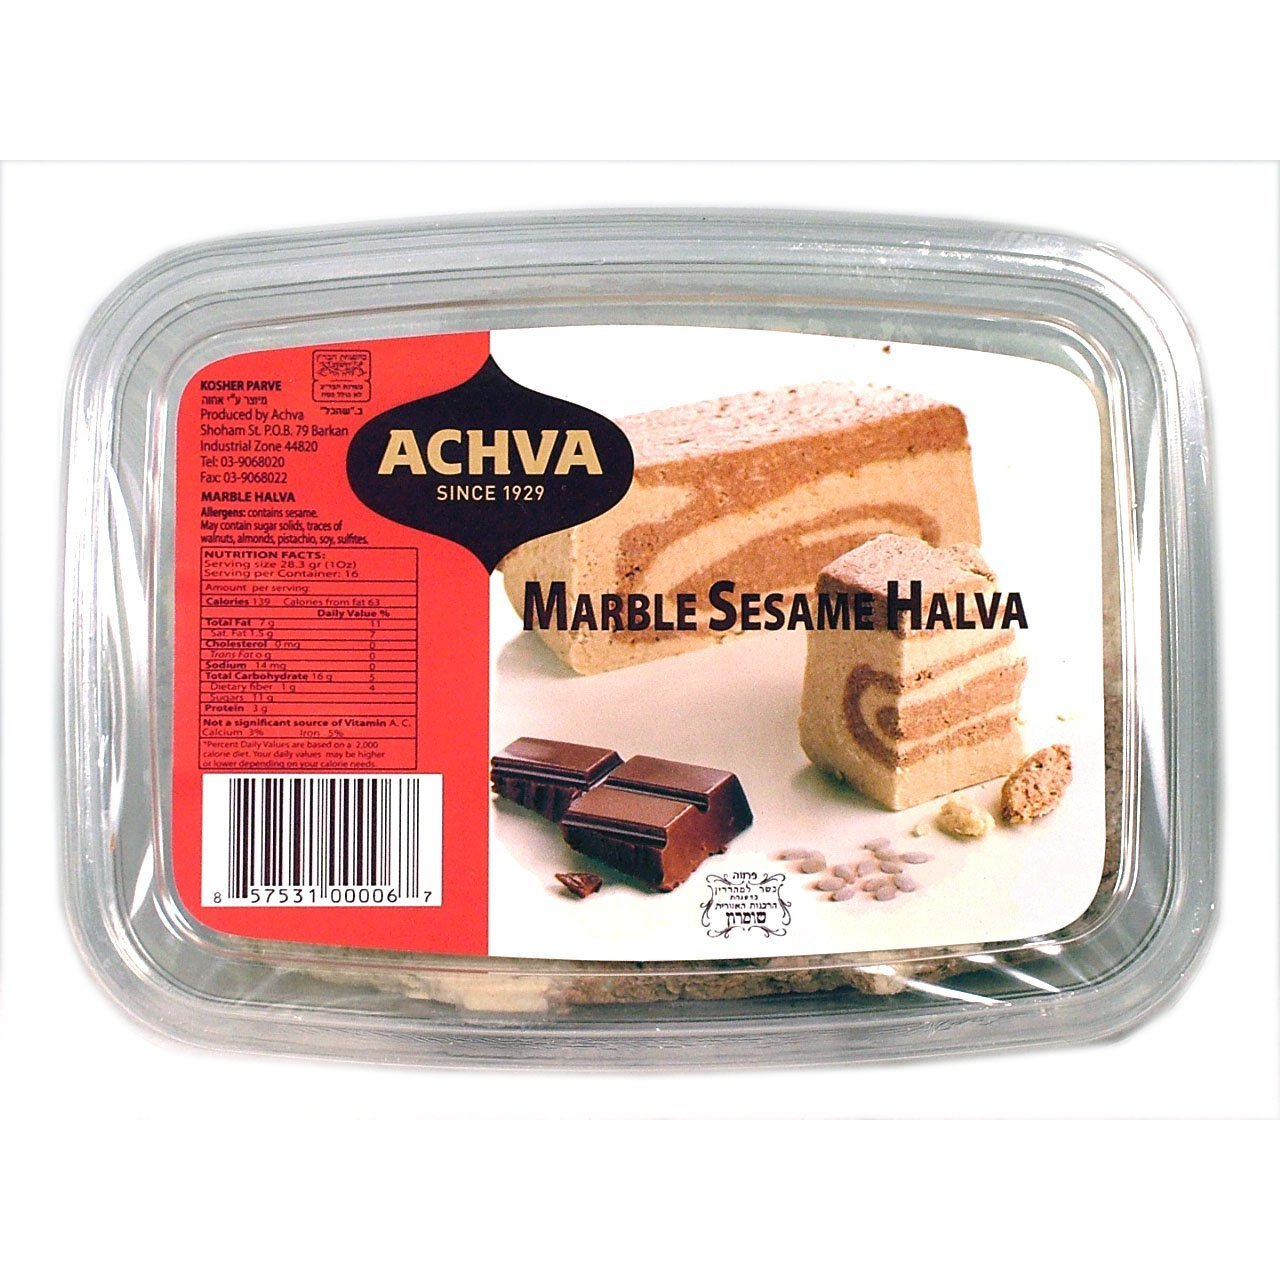 Achva Marble Sesame Halva, 16-Ounce Packages (Pack of 2) by Achva